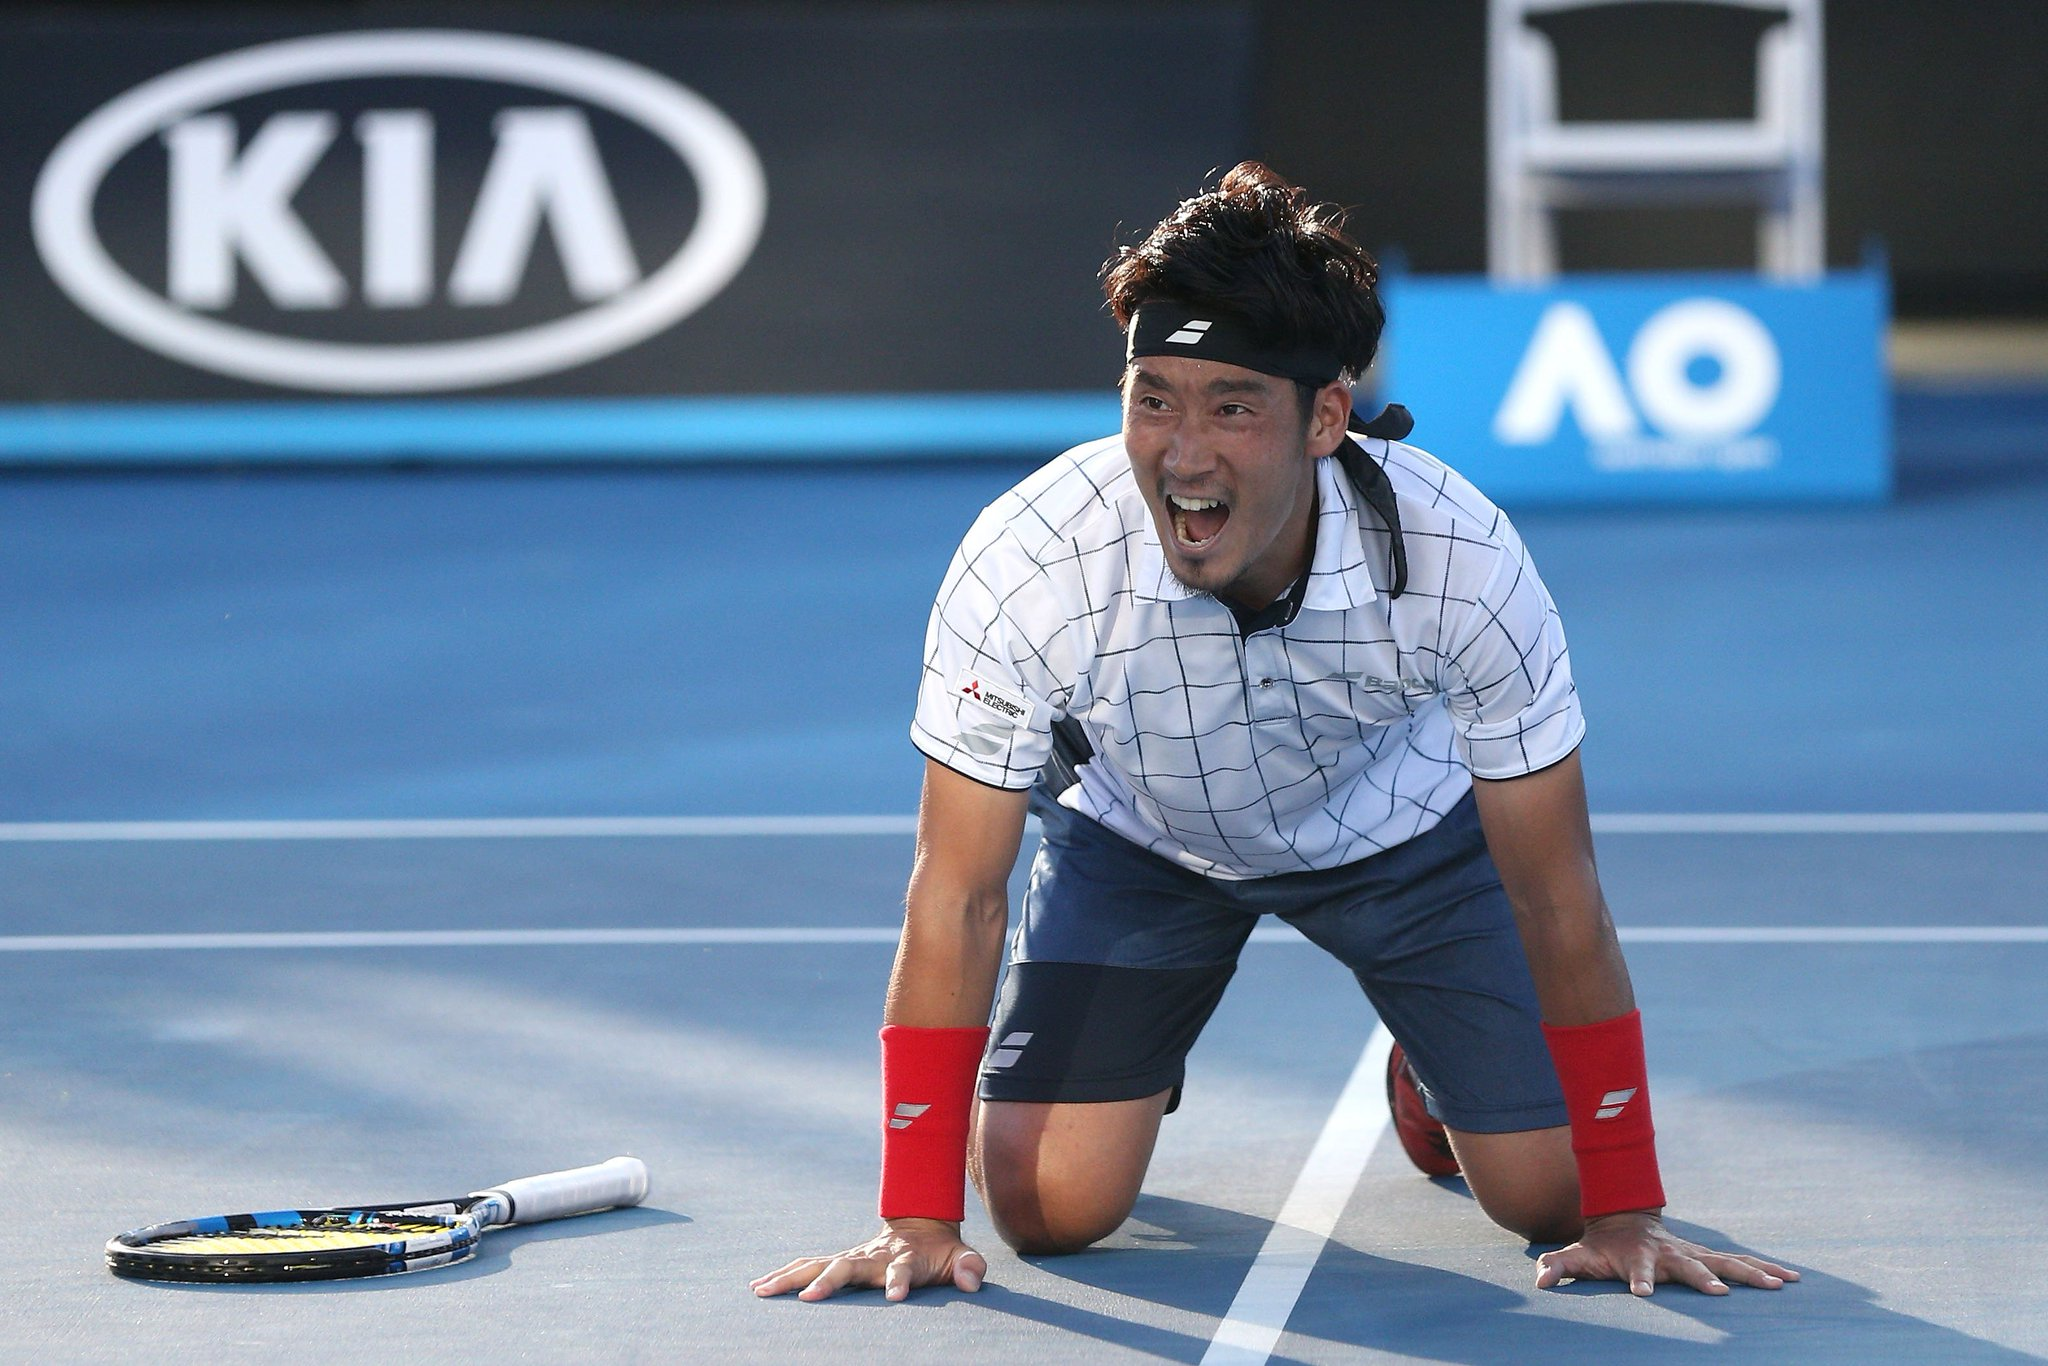 A stunner from Sugita!  ���� star takes down a seed in the #AusOpen 1R ➡️ https://t.co/nUaUreYiHu https://t.co/LITglcYQnP